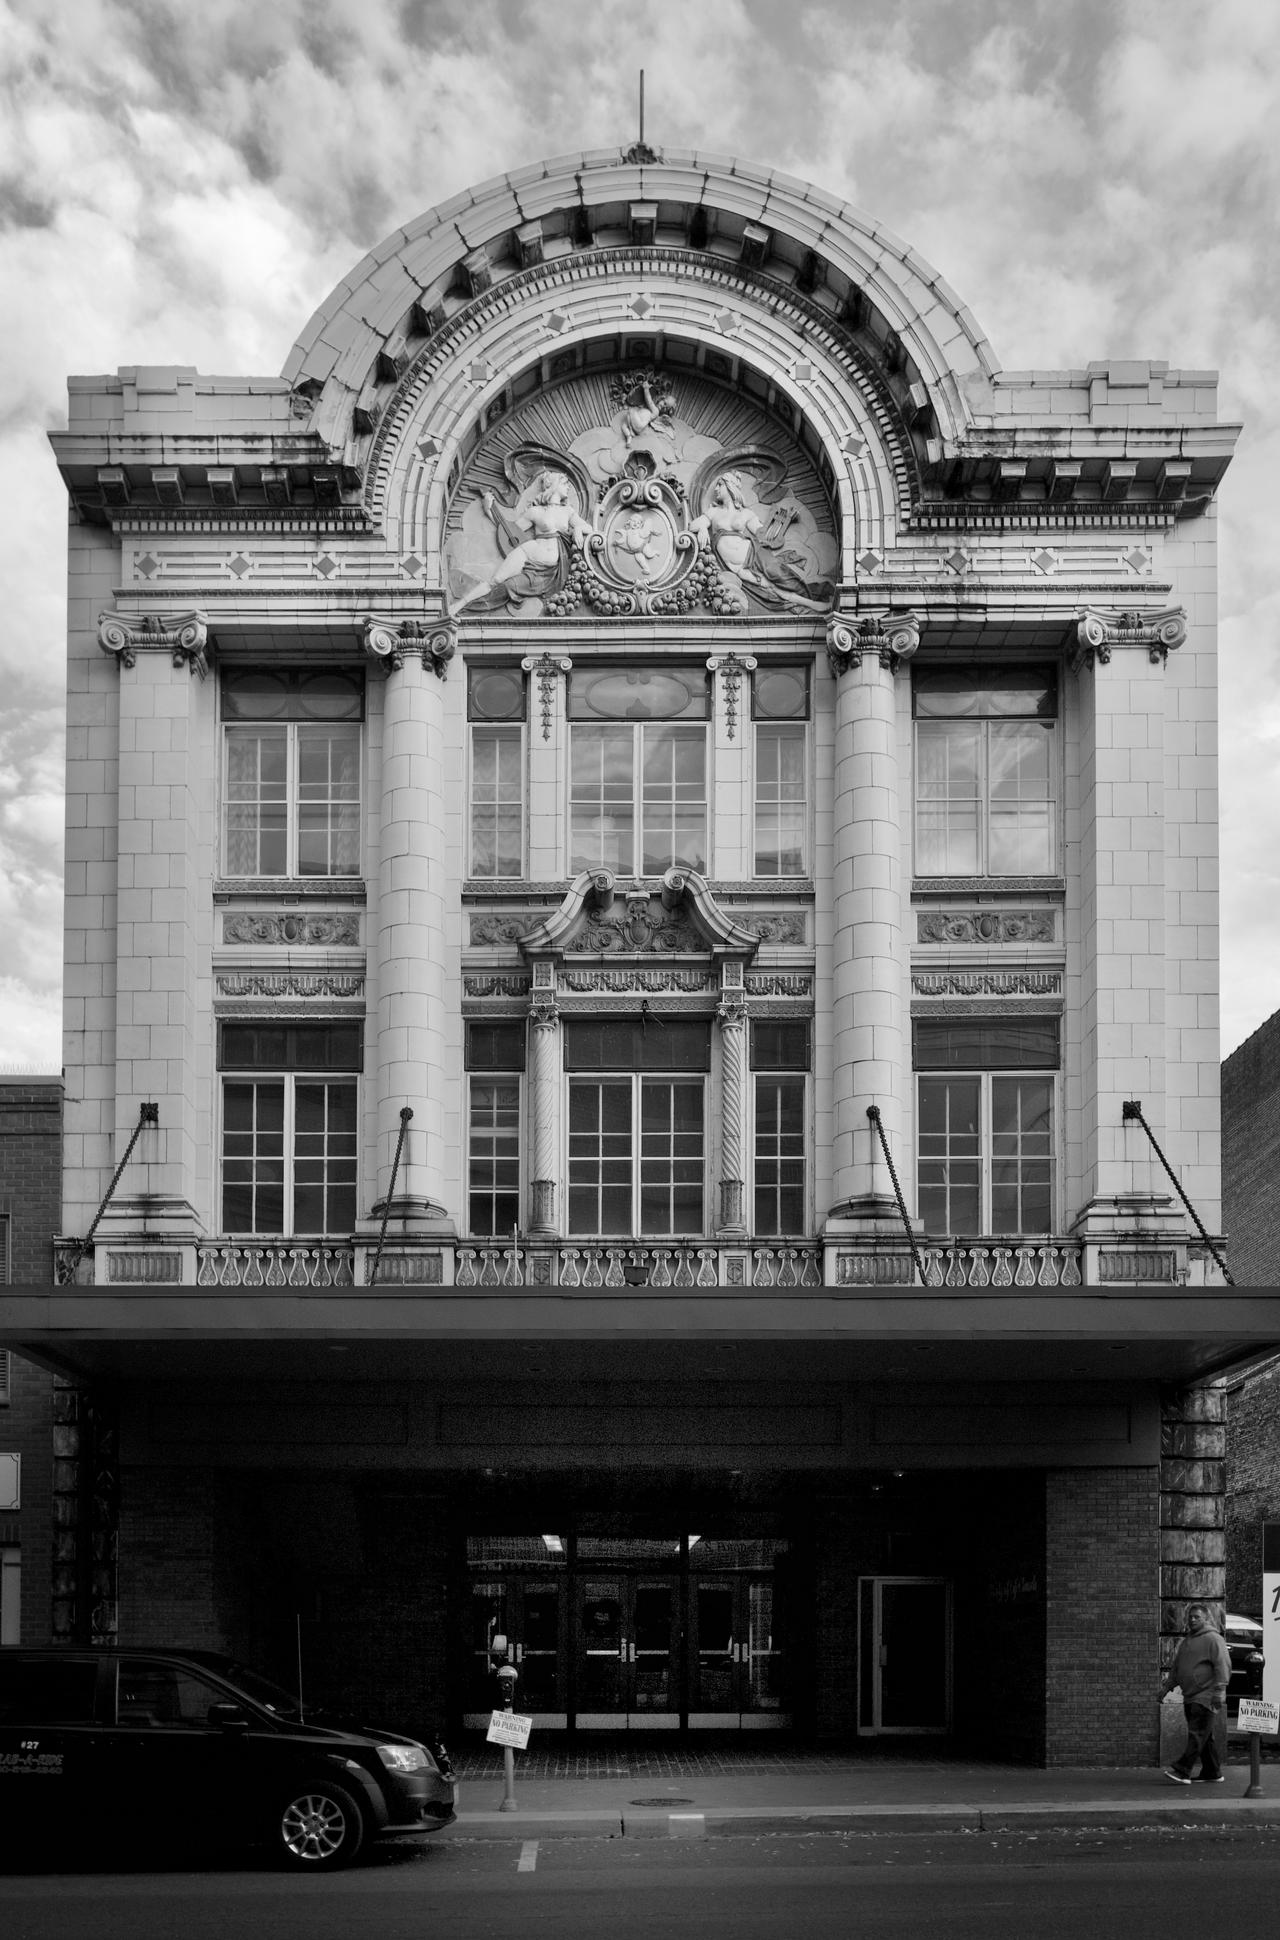 Black and white photo of front of a large theater